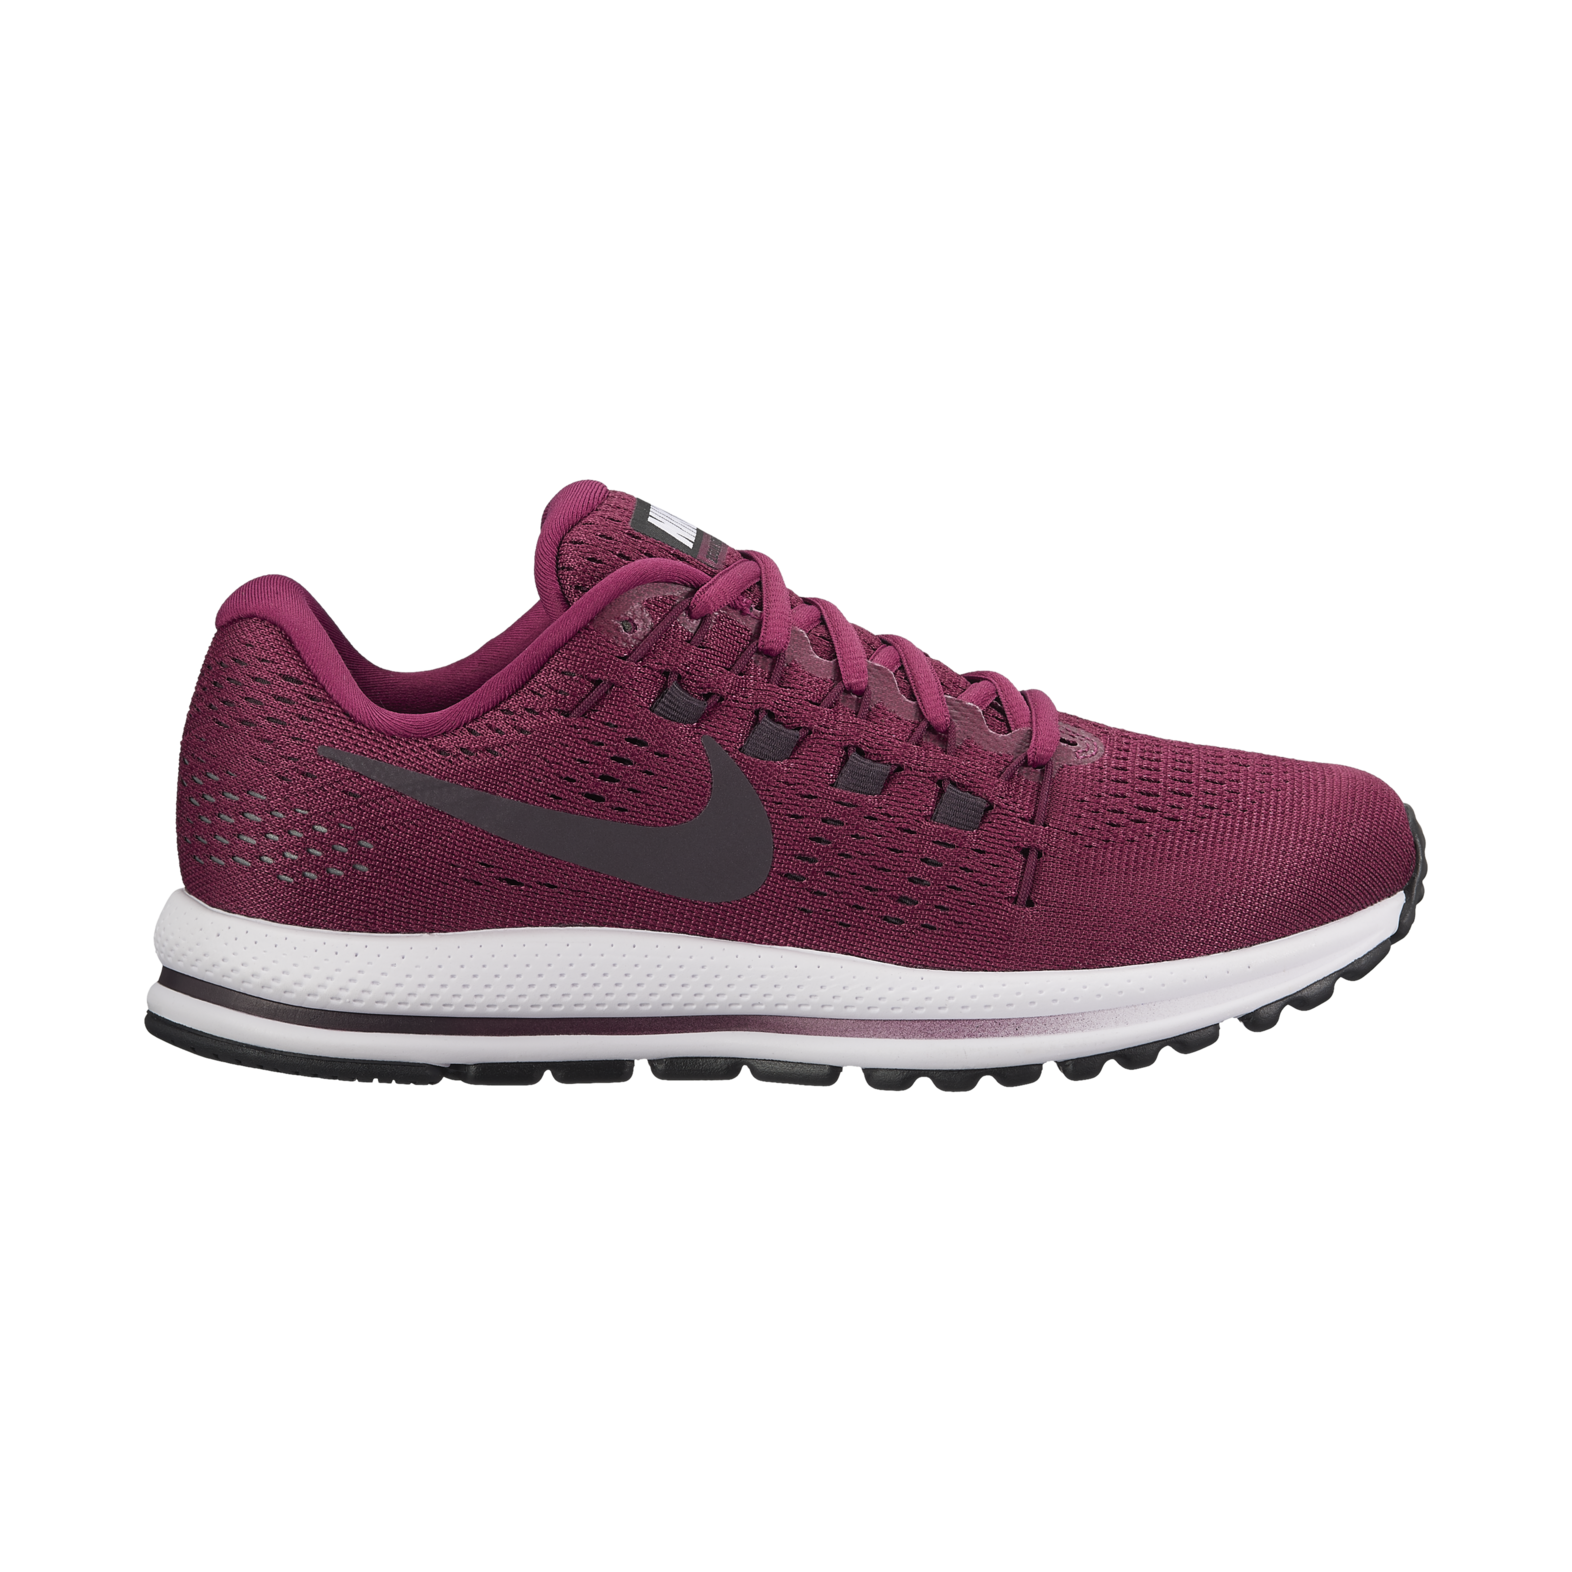 info for e0820 ce336 NIKE AIR ZOOM VOMERO 12 LADIES